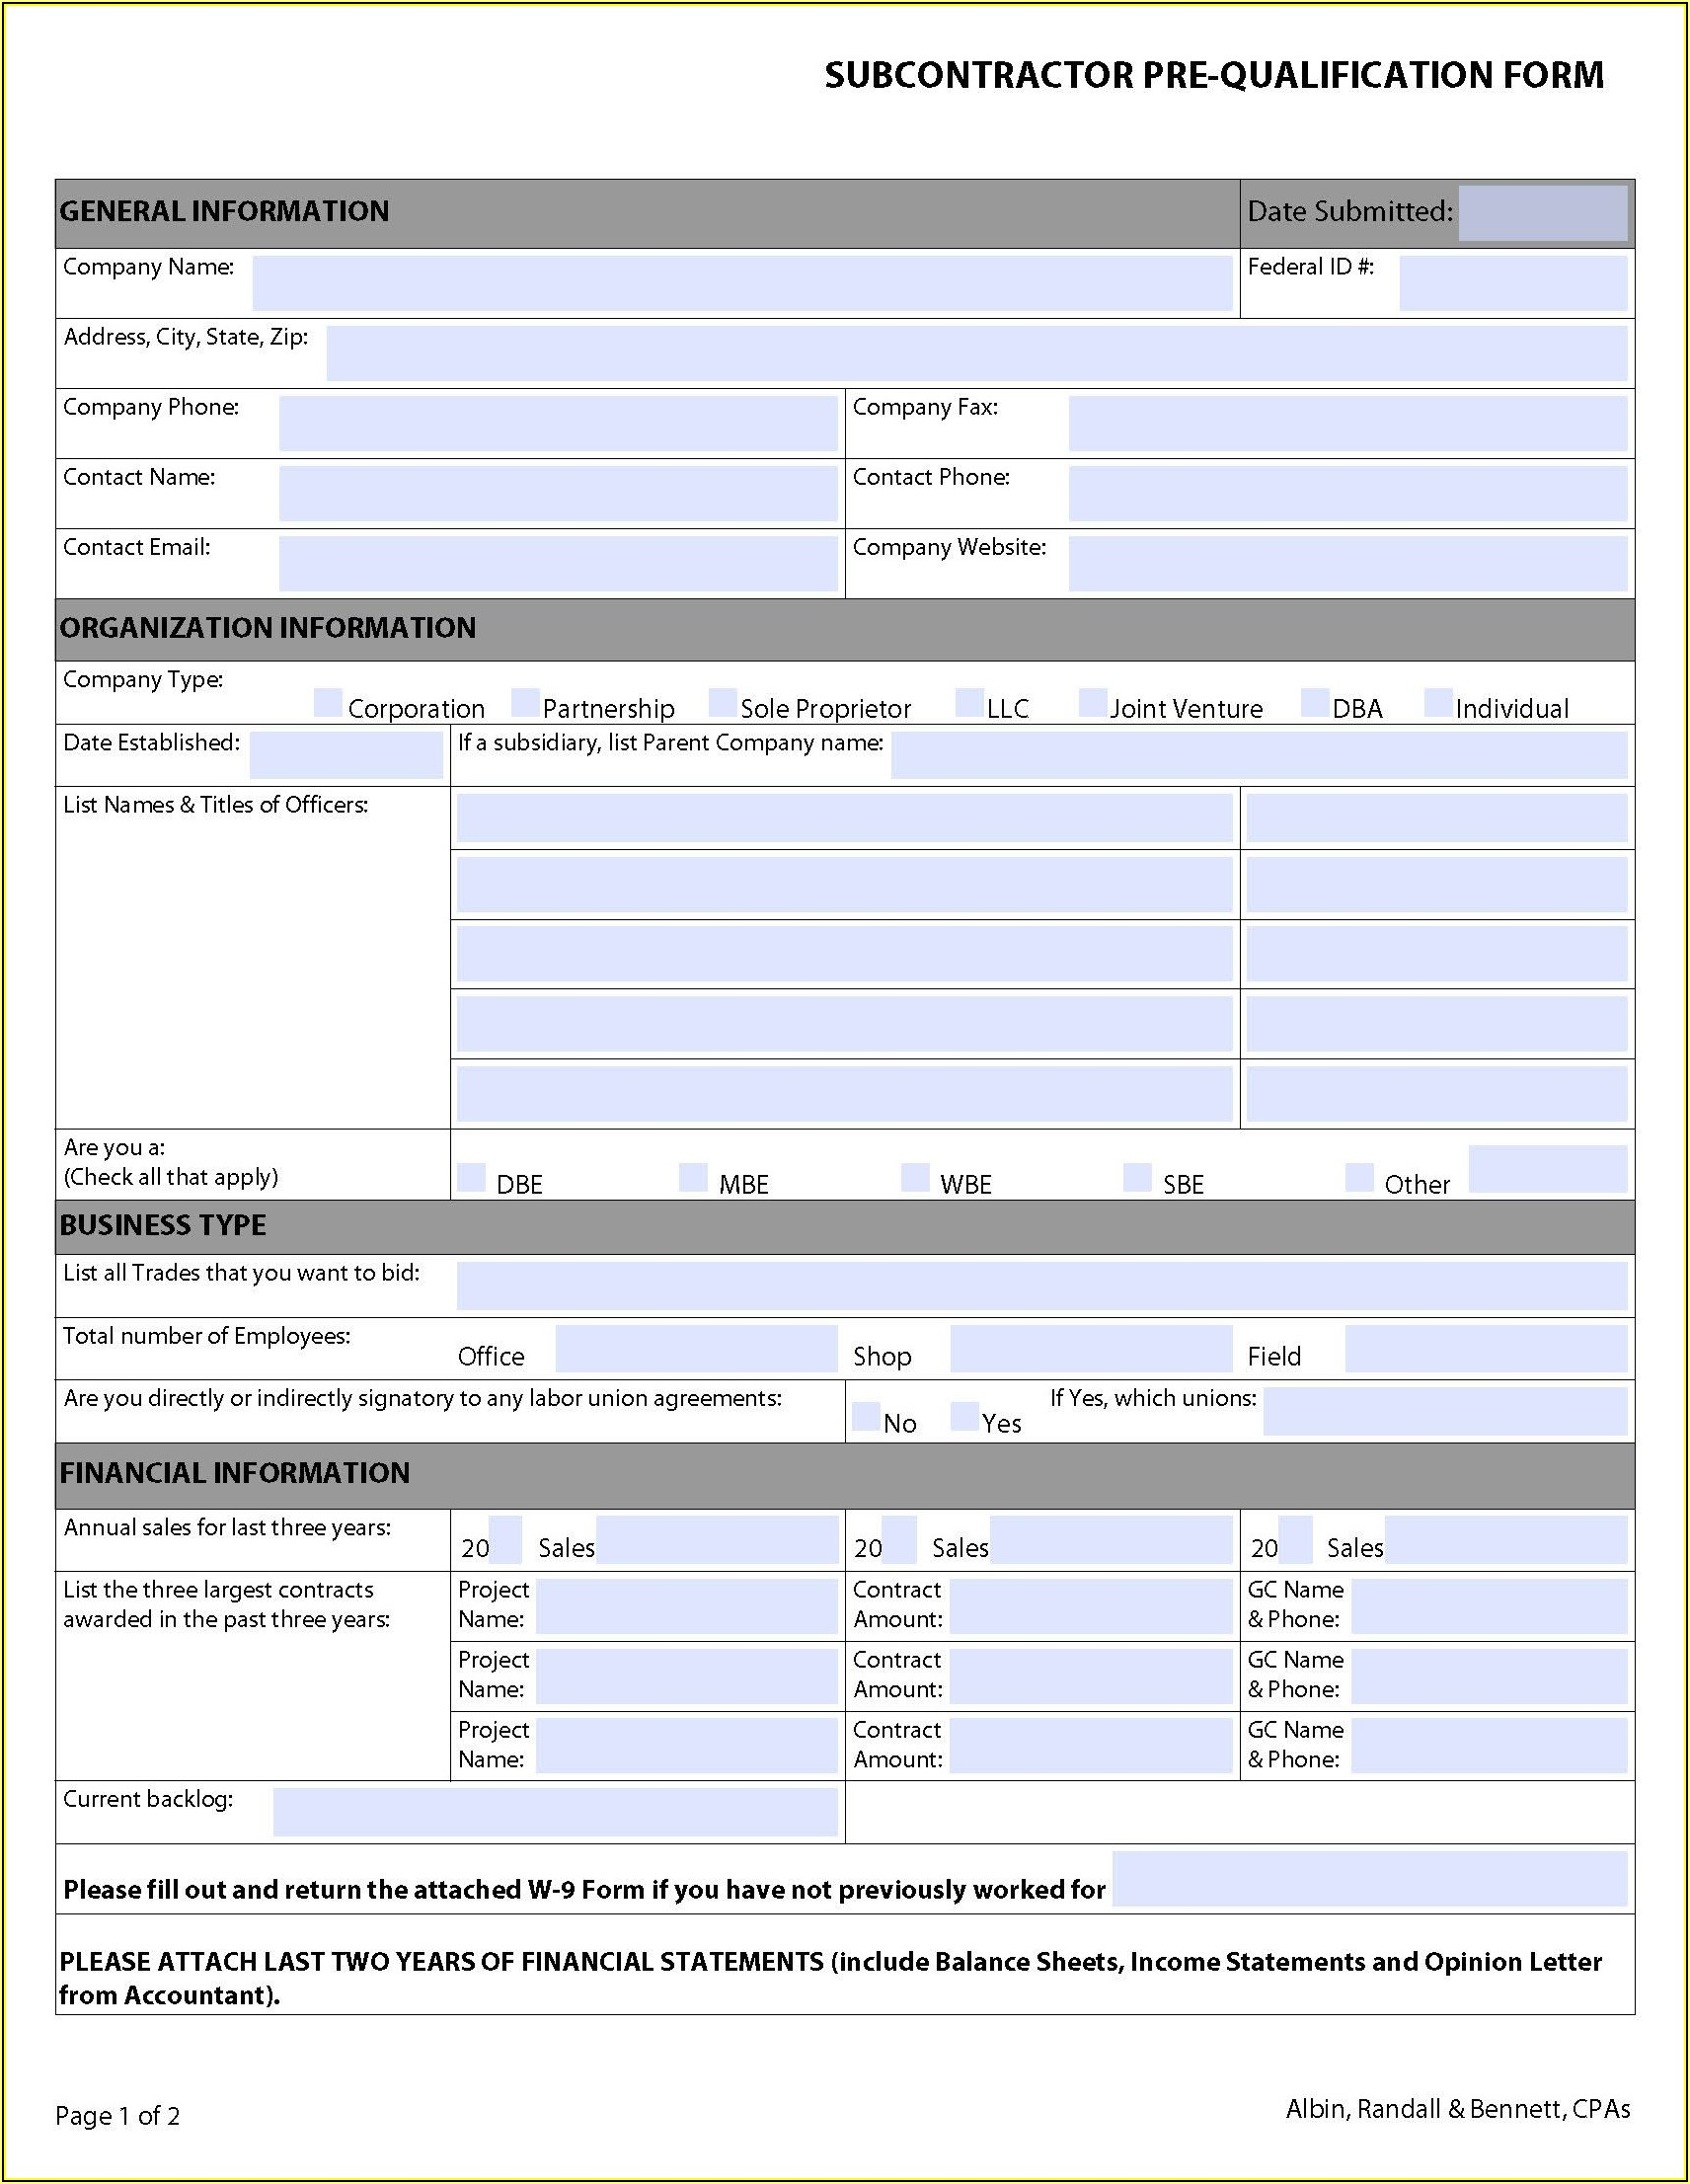 Subcontractor Prequalification Form Template Australia